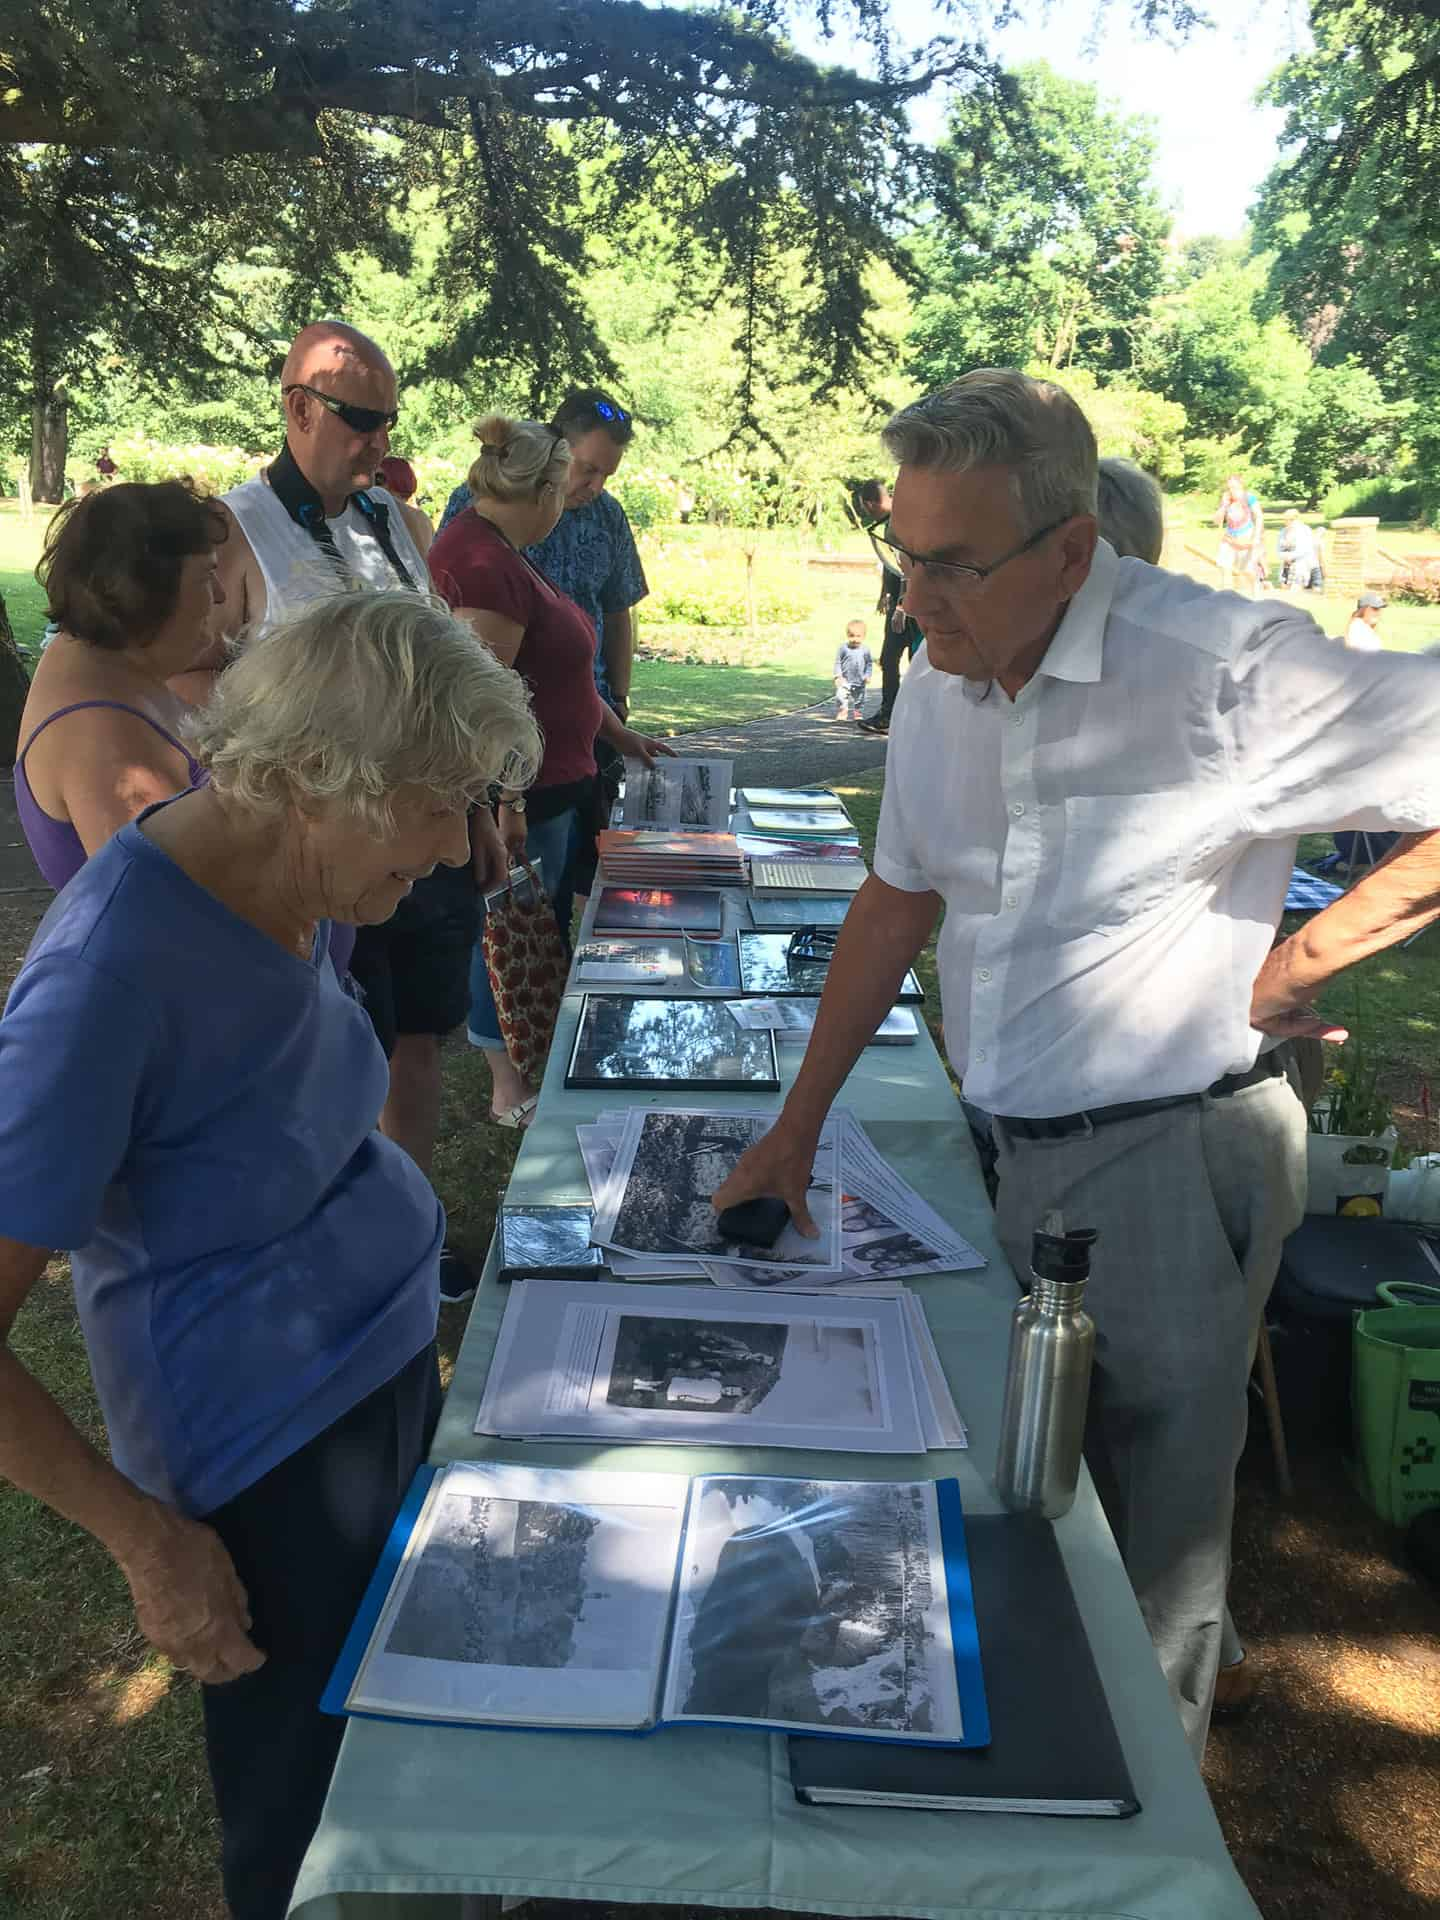 Former Land Army girl Nancy Cooper talks to Living Memory project vollunteer Jim Rippin at Midsummer Music in the Park event